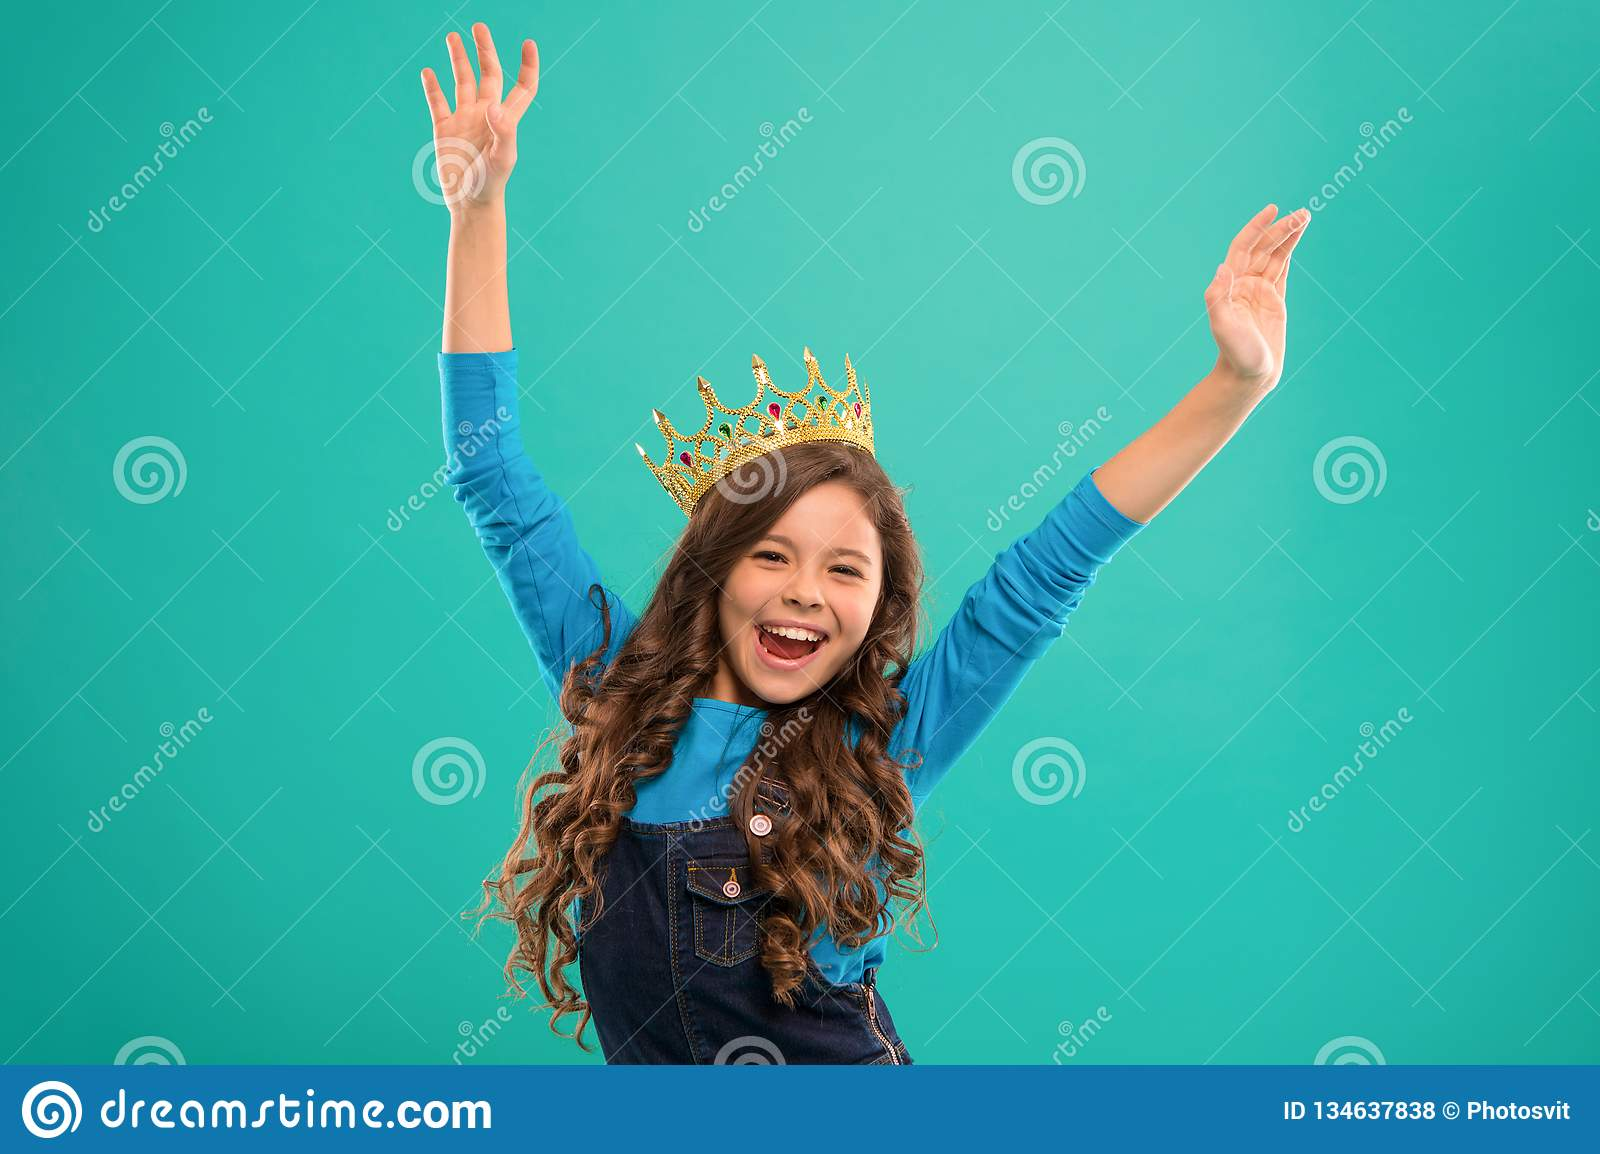 Feels like queen kid wear golden crown symbol of princess lady little princess girl cute baby wear crown while stand blue background childhood concept